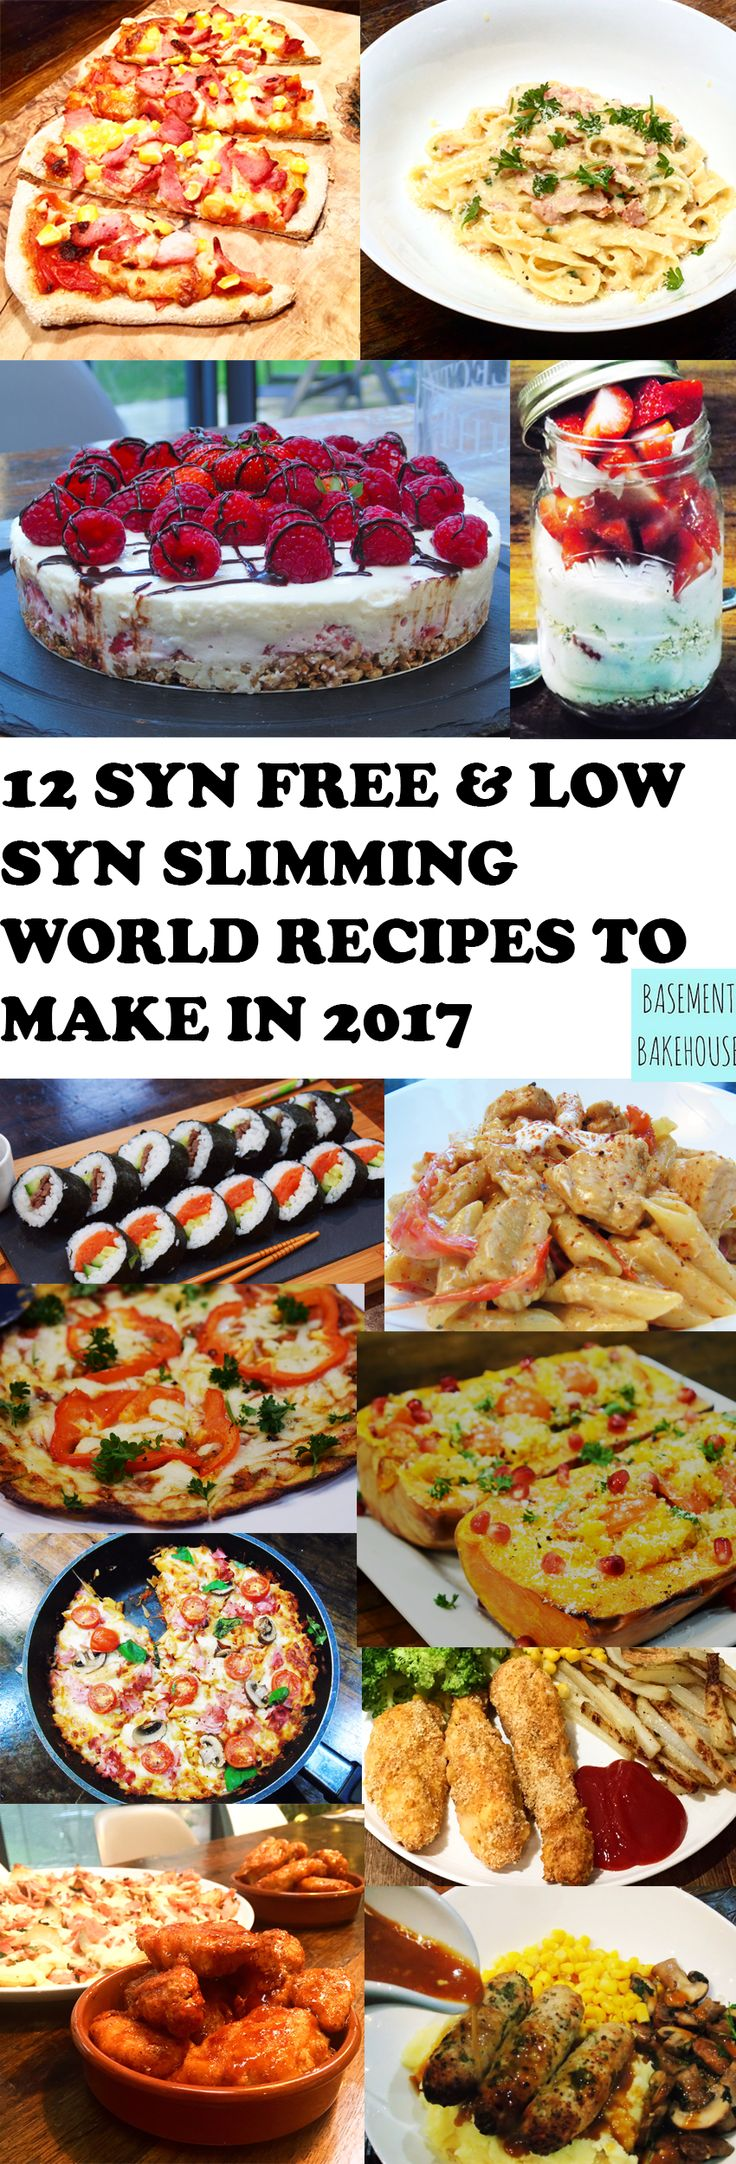 The 536 Best Images About Slimming World Recipes On